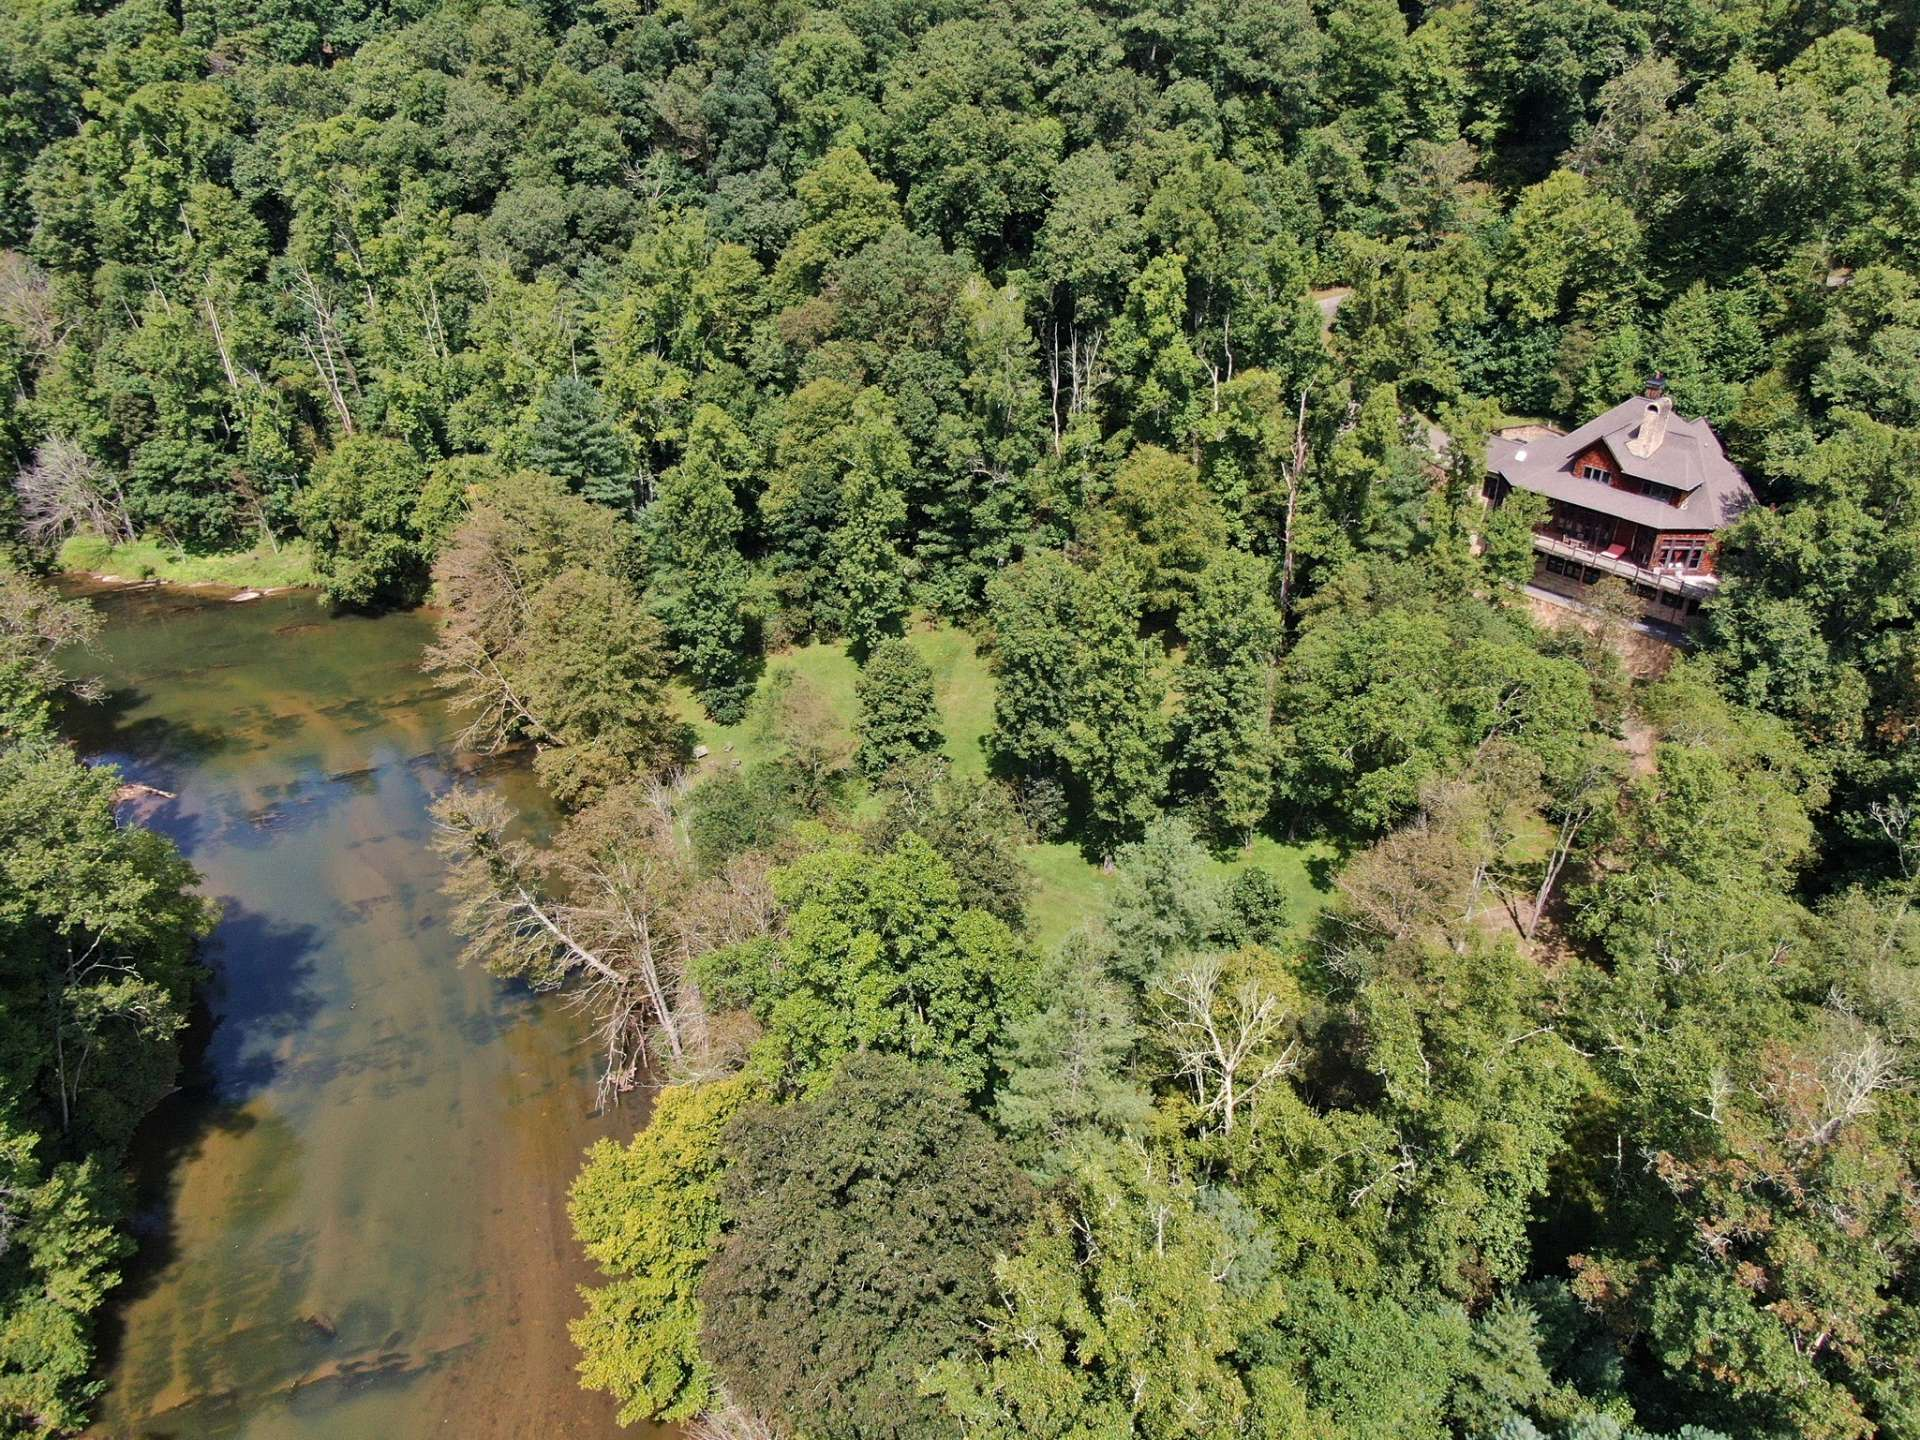 This unique private lodge type property is offered at $1,200,000 and the ideal NC Mountain riverfront estate located in the New River Bluffs community in the Glendale Springs area of Eastern Ashe County.